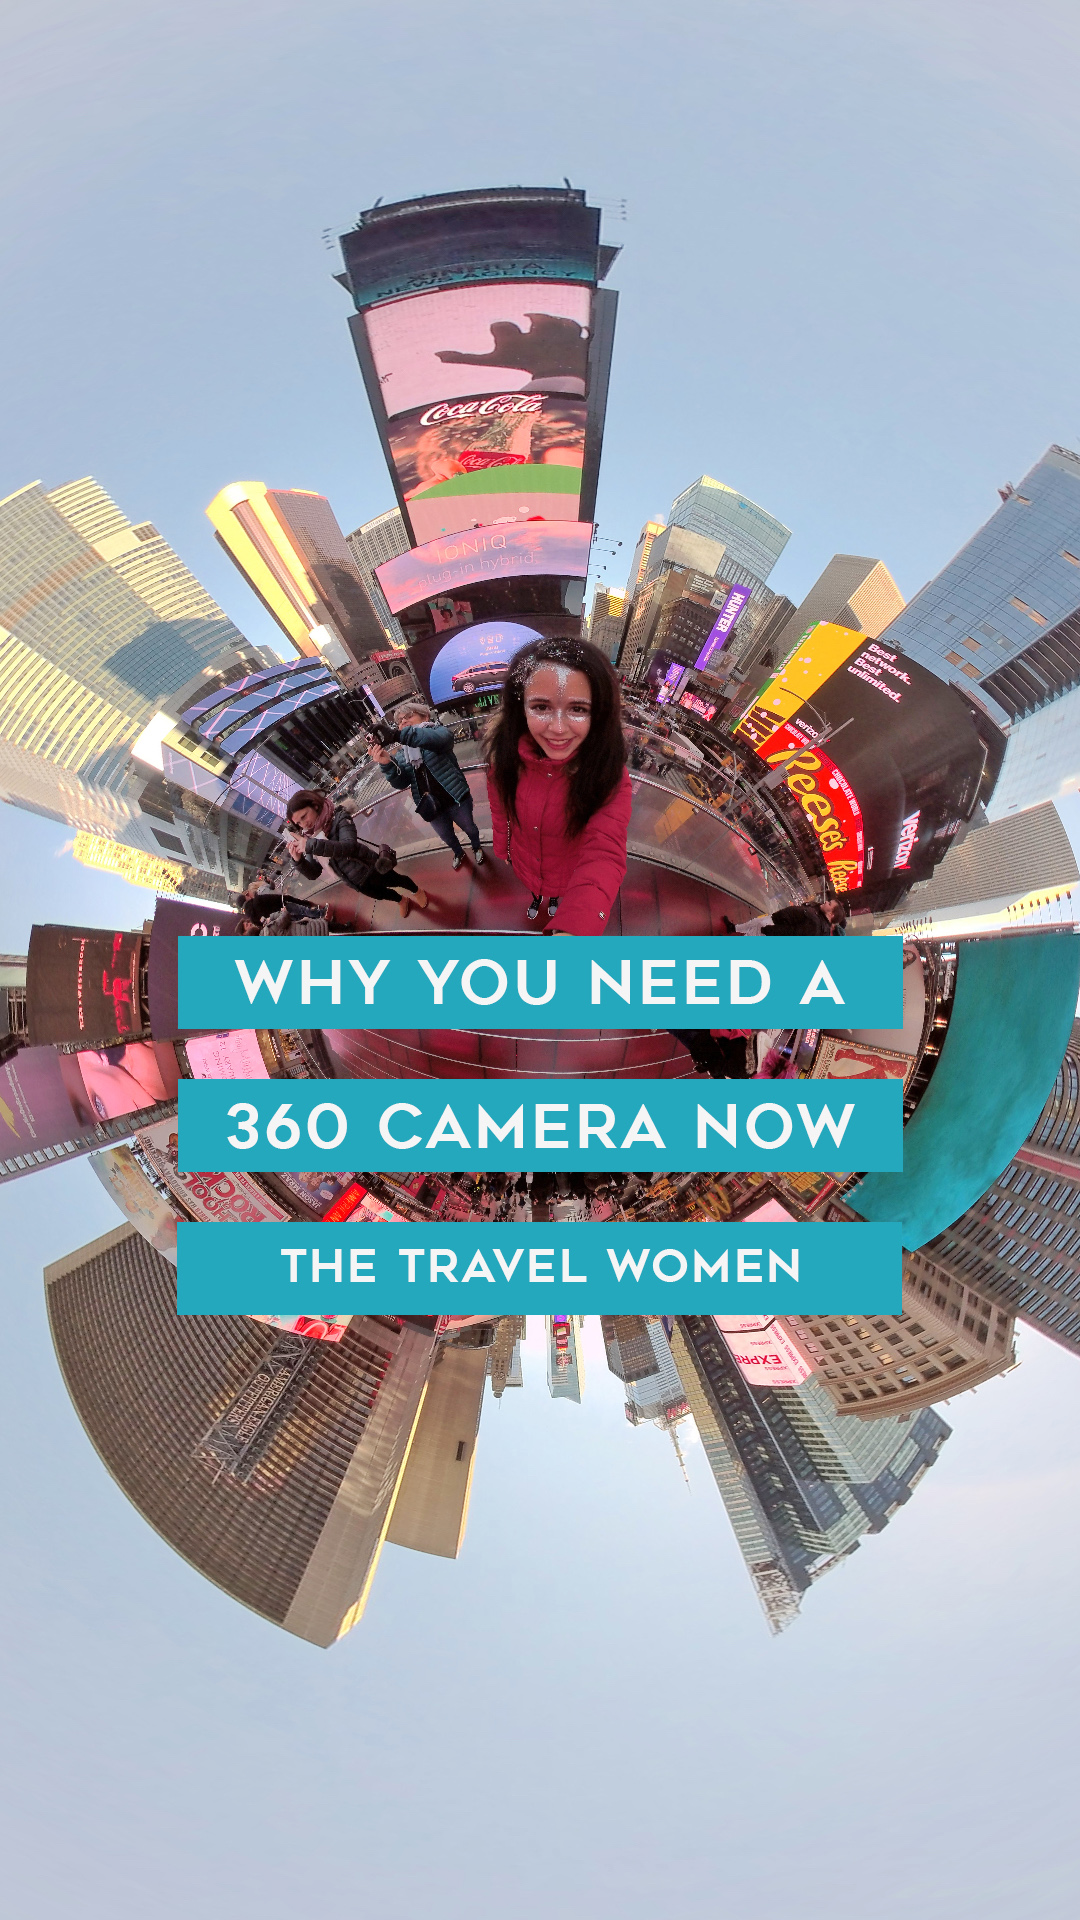 why you need a 360 camera now